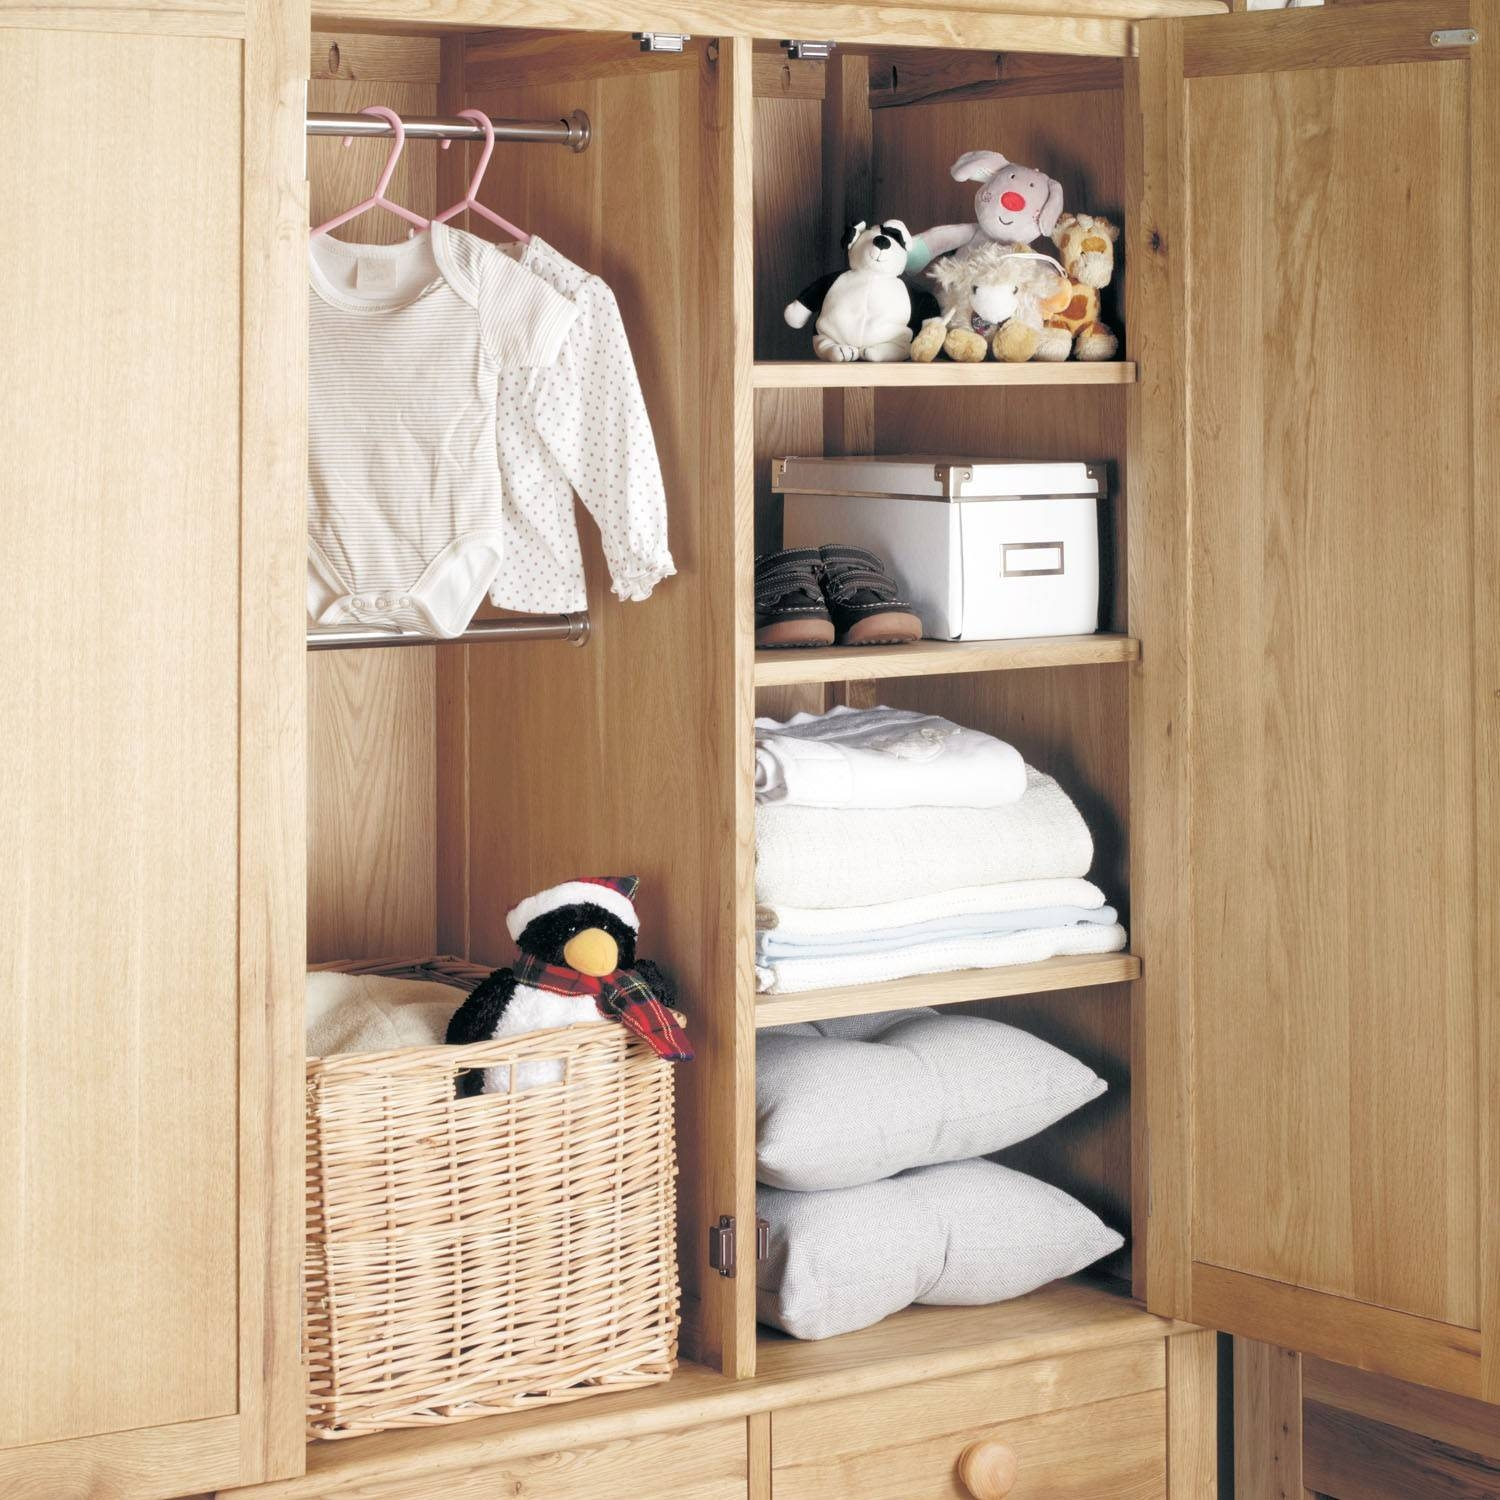 Amelie Oak Childrens Double Wardrobe - Amelie Oak Children's intended for Childrens Wardrobes With Drawers and Shelves (Image 2 of 30)